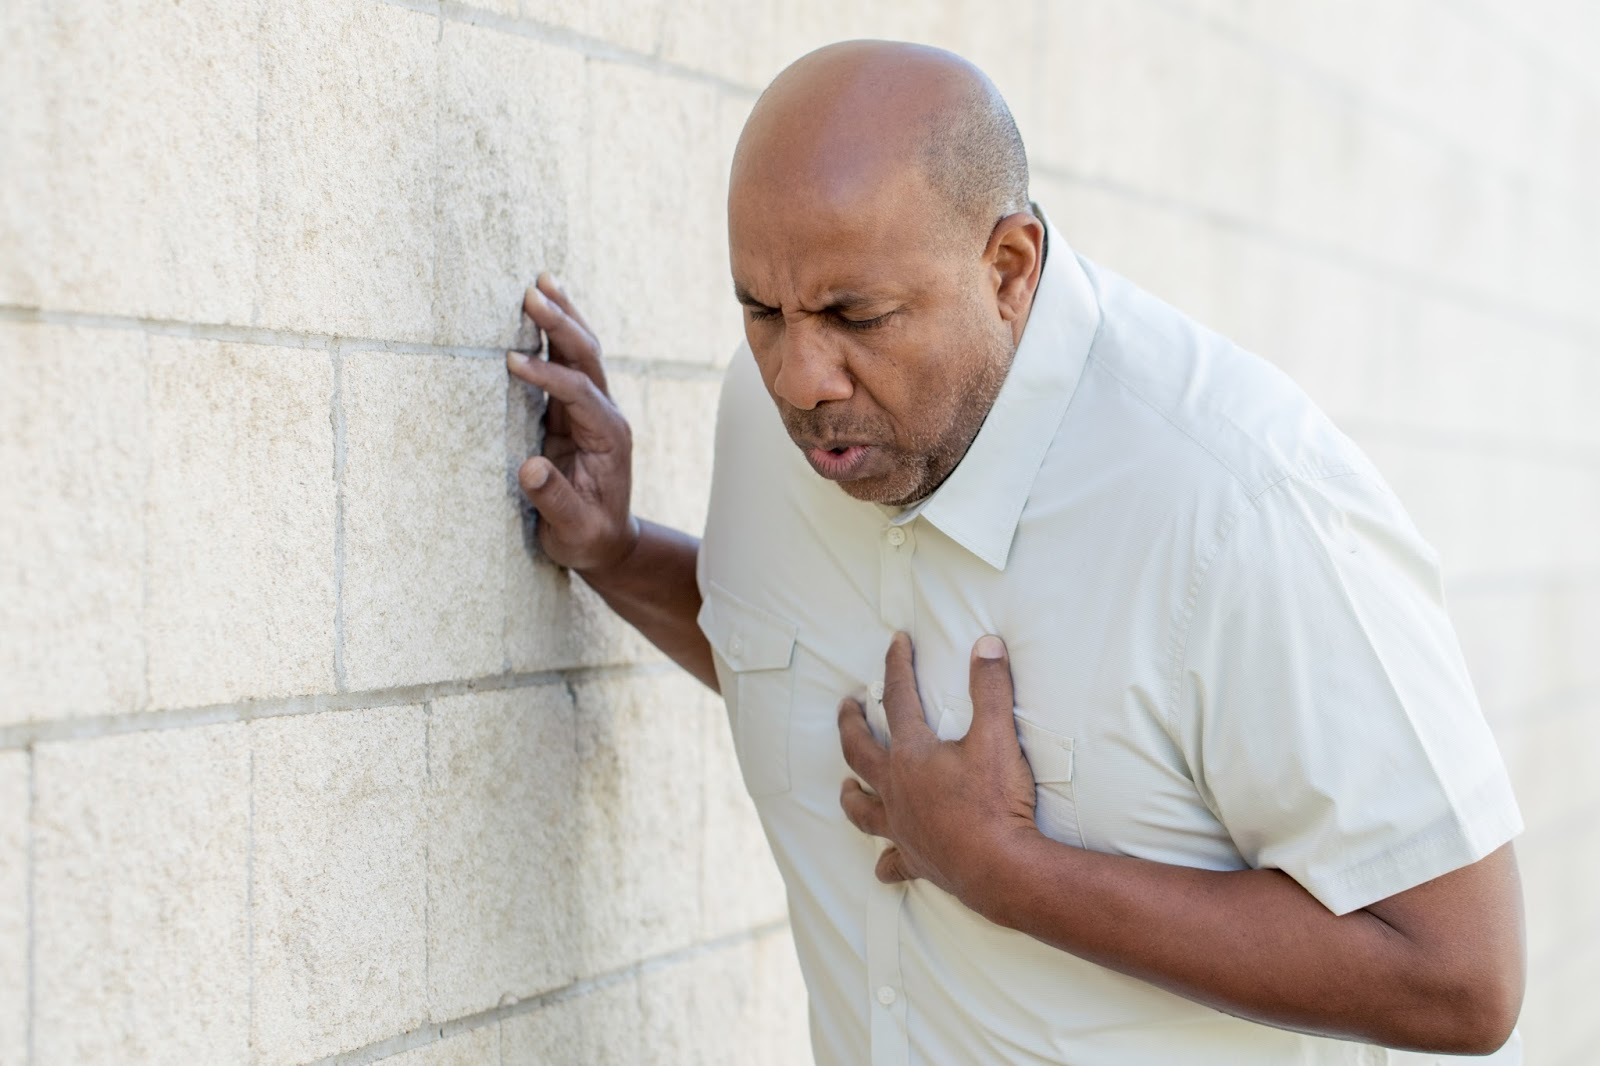 Man gripping his chest as if in pain